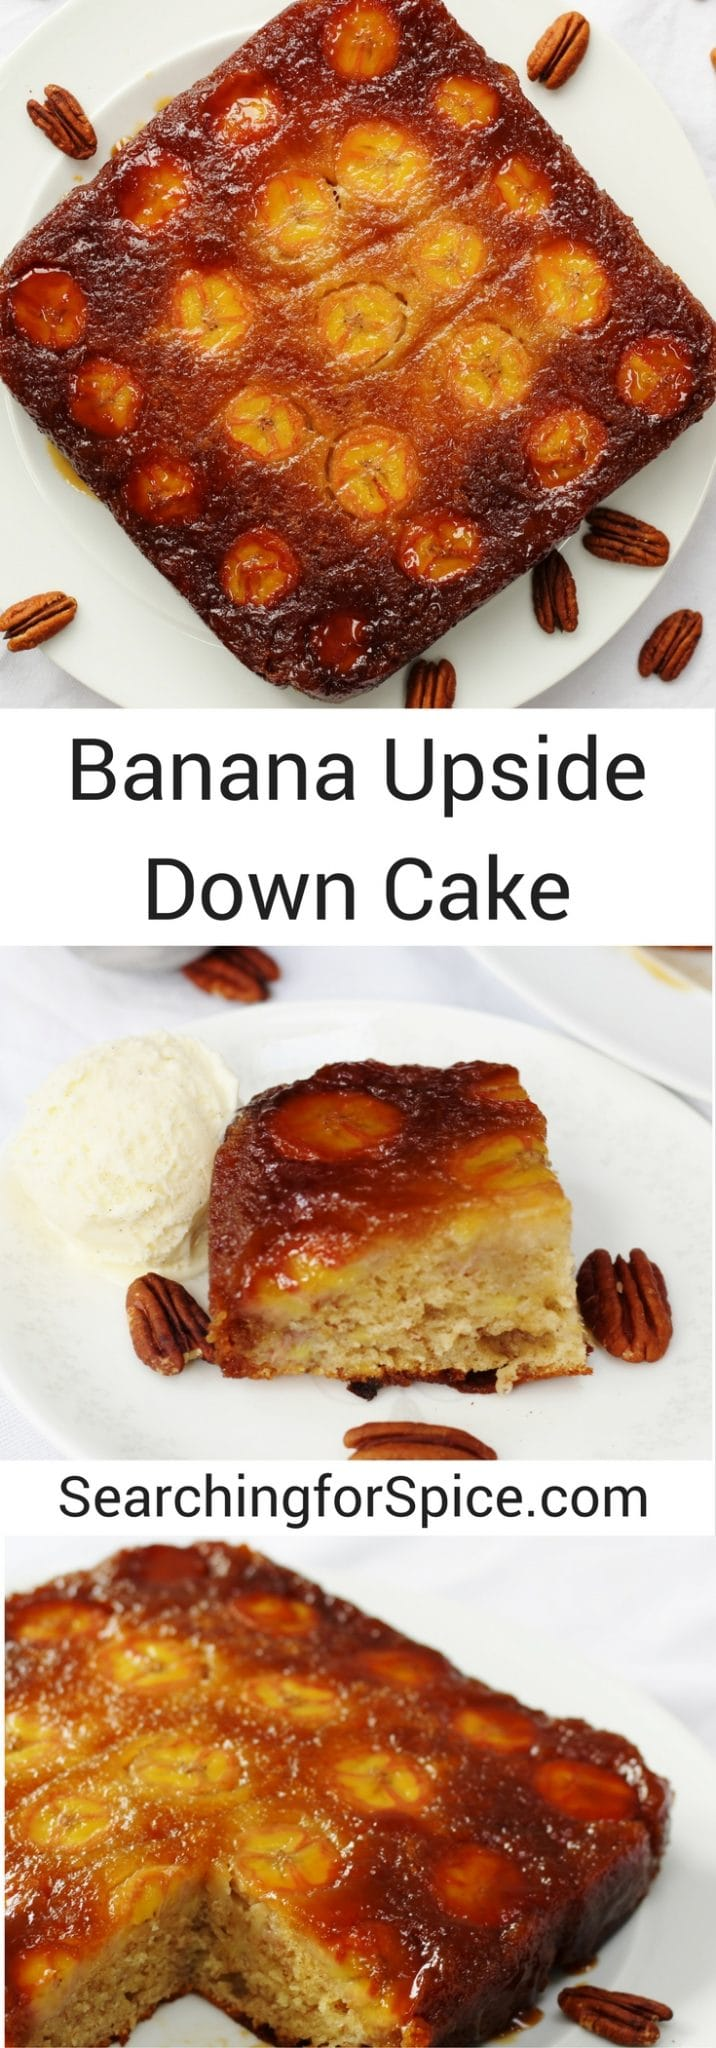 Caramellly bananan upside down cake. Perfect served with cream or ice cream